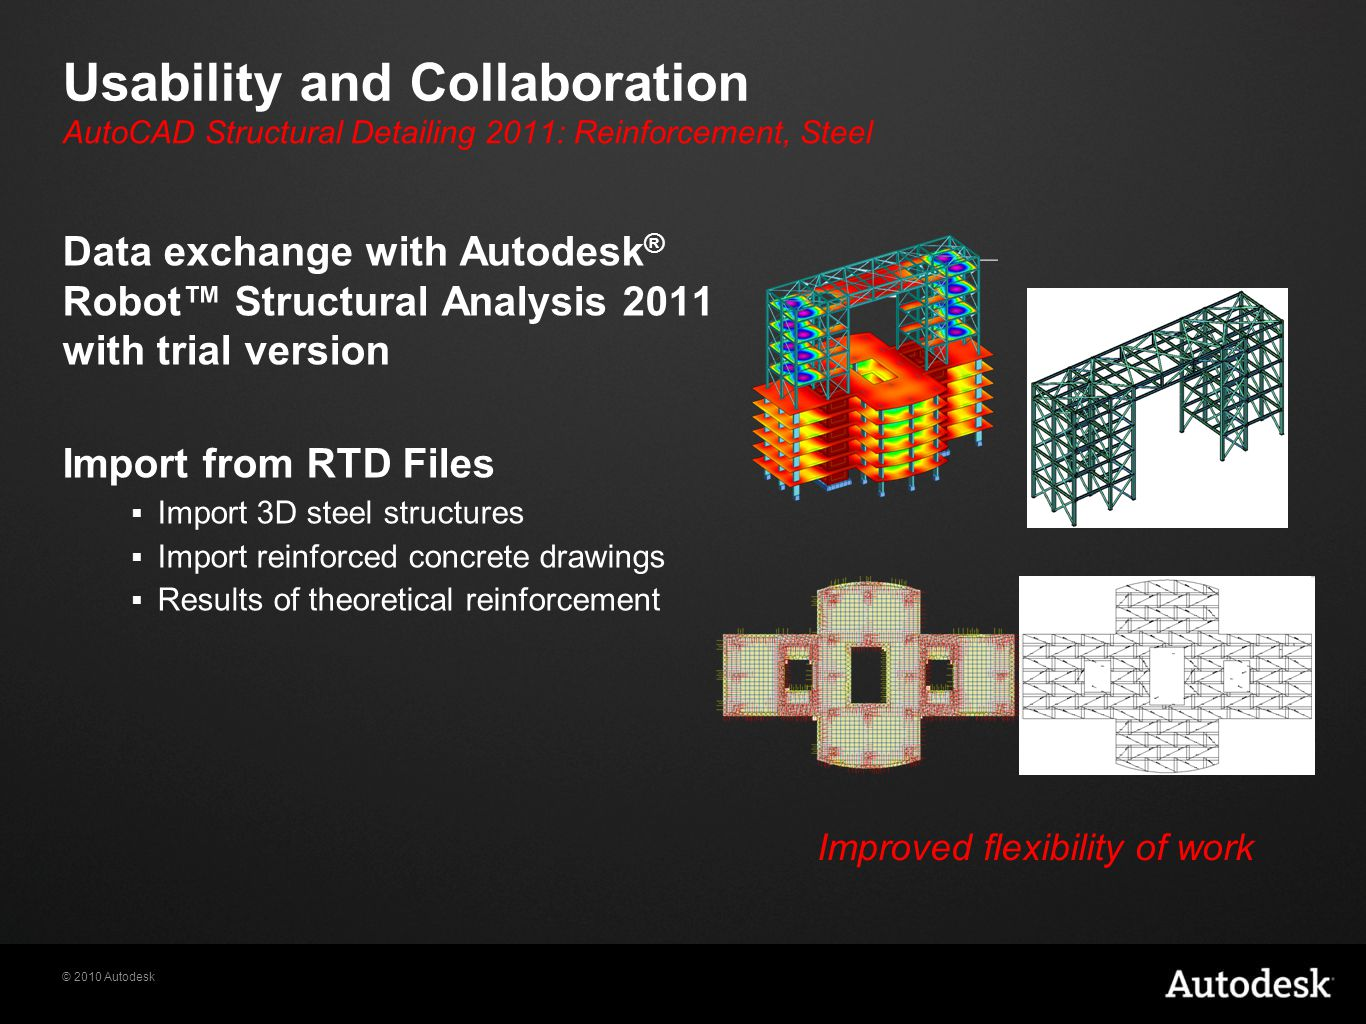 © 2010 Autodesk Usability and Collaboration Data exchange with Autodesk ® Robot™ Structural Analysis 2011 with trial version Import from RTD Files  Import 3D steel structures  Import reinforced concrete drawings  Results of theoretical reinforcement Improved flexibility of work AutoCAD Structural Detailing 2011: Reinforcement, Steel